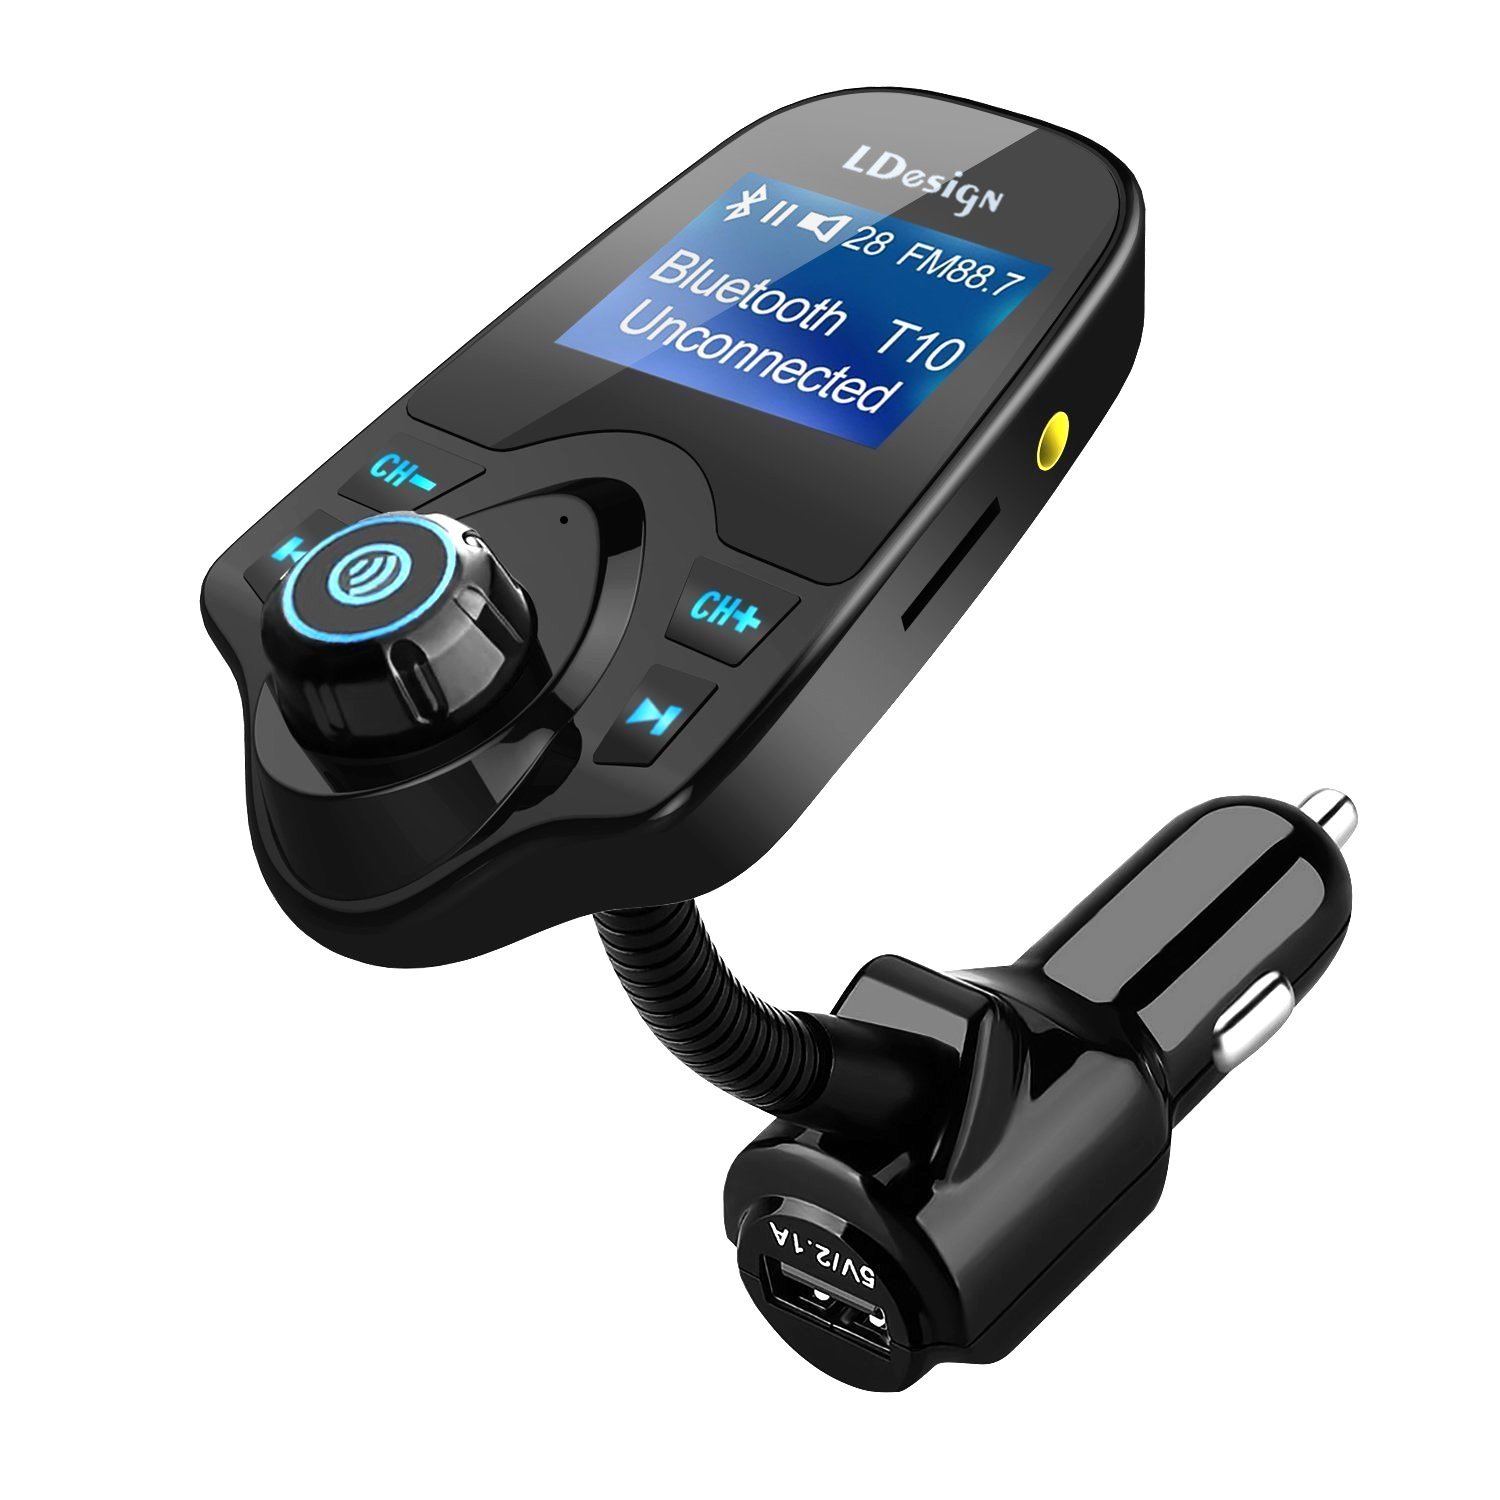 "Bluetooth Car FM Transmitter, LDesign Wireless FM Transmitter Audio Adapter Car Kit with 1.44"" LCD Display, Flexible Gooseneck, Safe Fast USB Charger, Hands-Free Calling, Music Player Support TF Card, USB Flash Drive, AUX Input/Output FMTR0008"